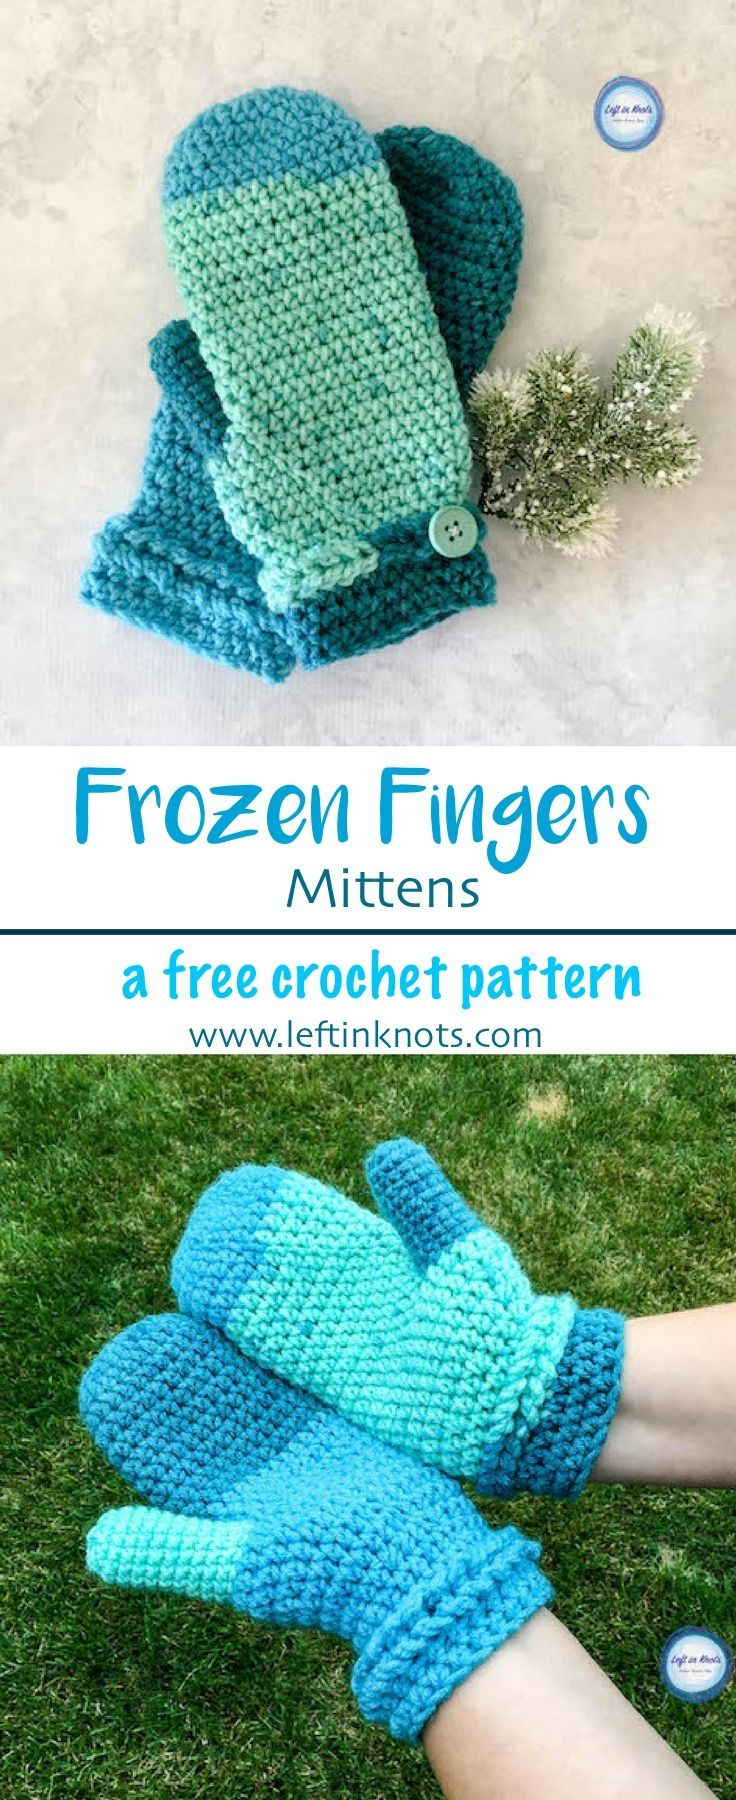 Take out one skein of yarn and make a pair of beautiful, warm mittens to add to your gifting stash!  The Frozen Fingers Mittens are a fast, simple and free crochet pattern and will keep your hands warm all fall and winter.